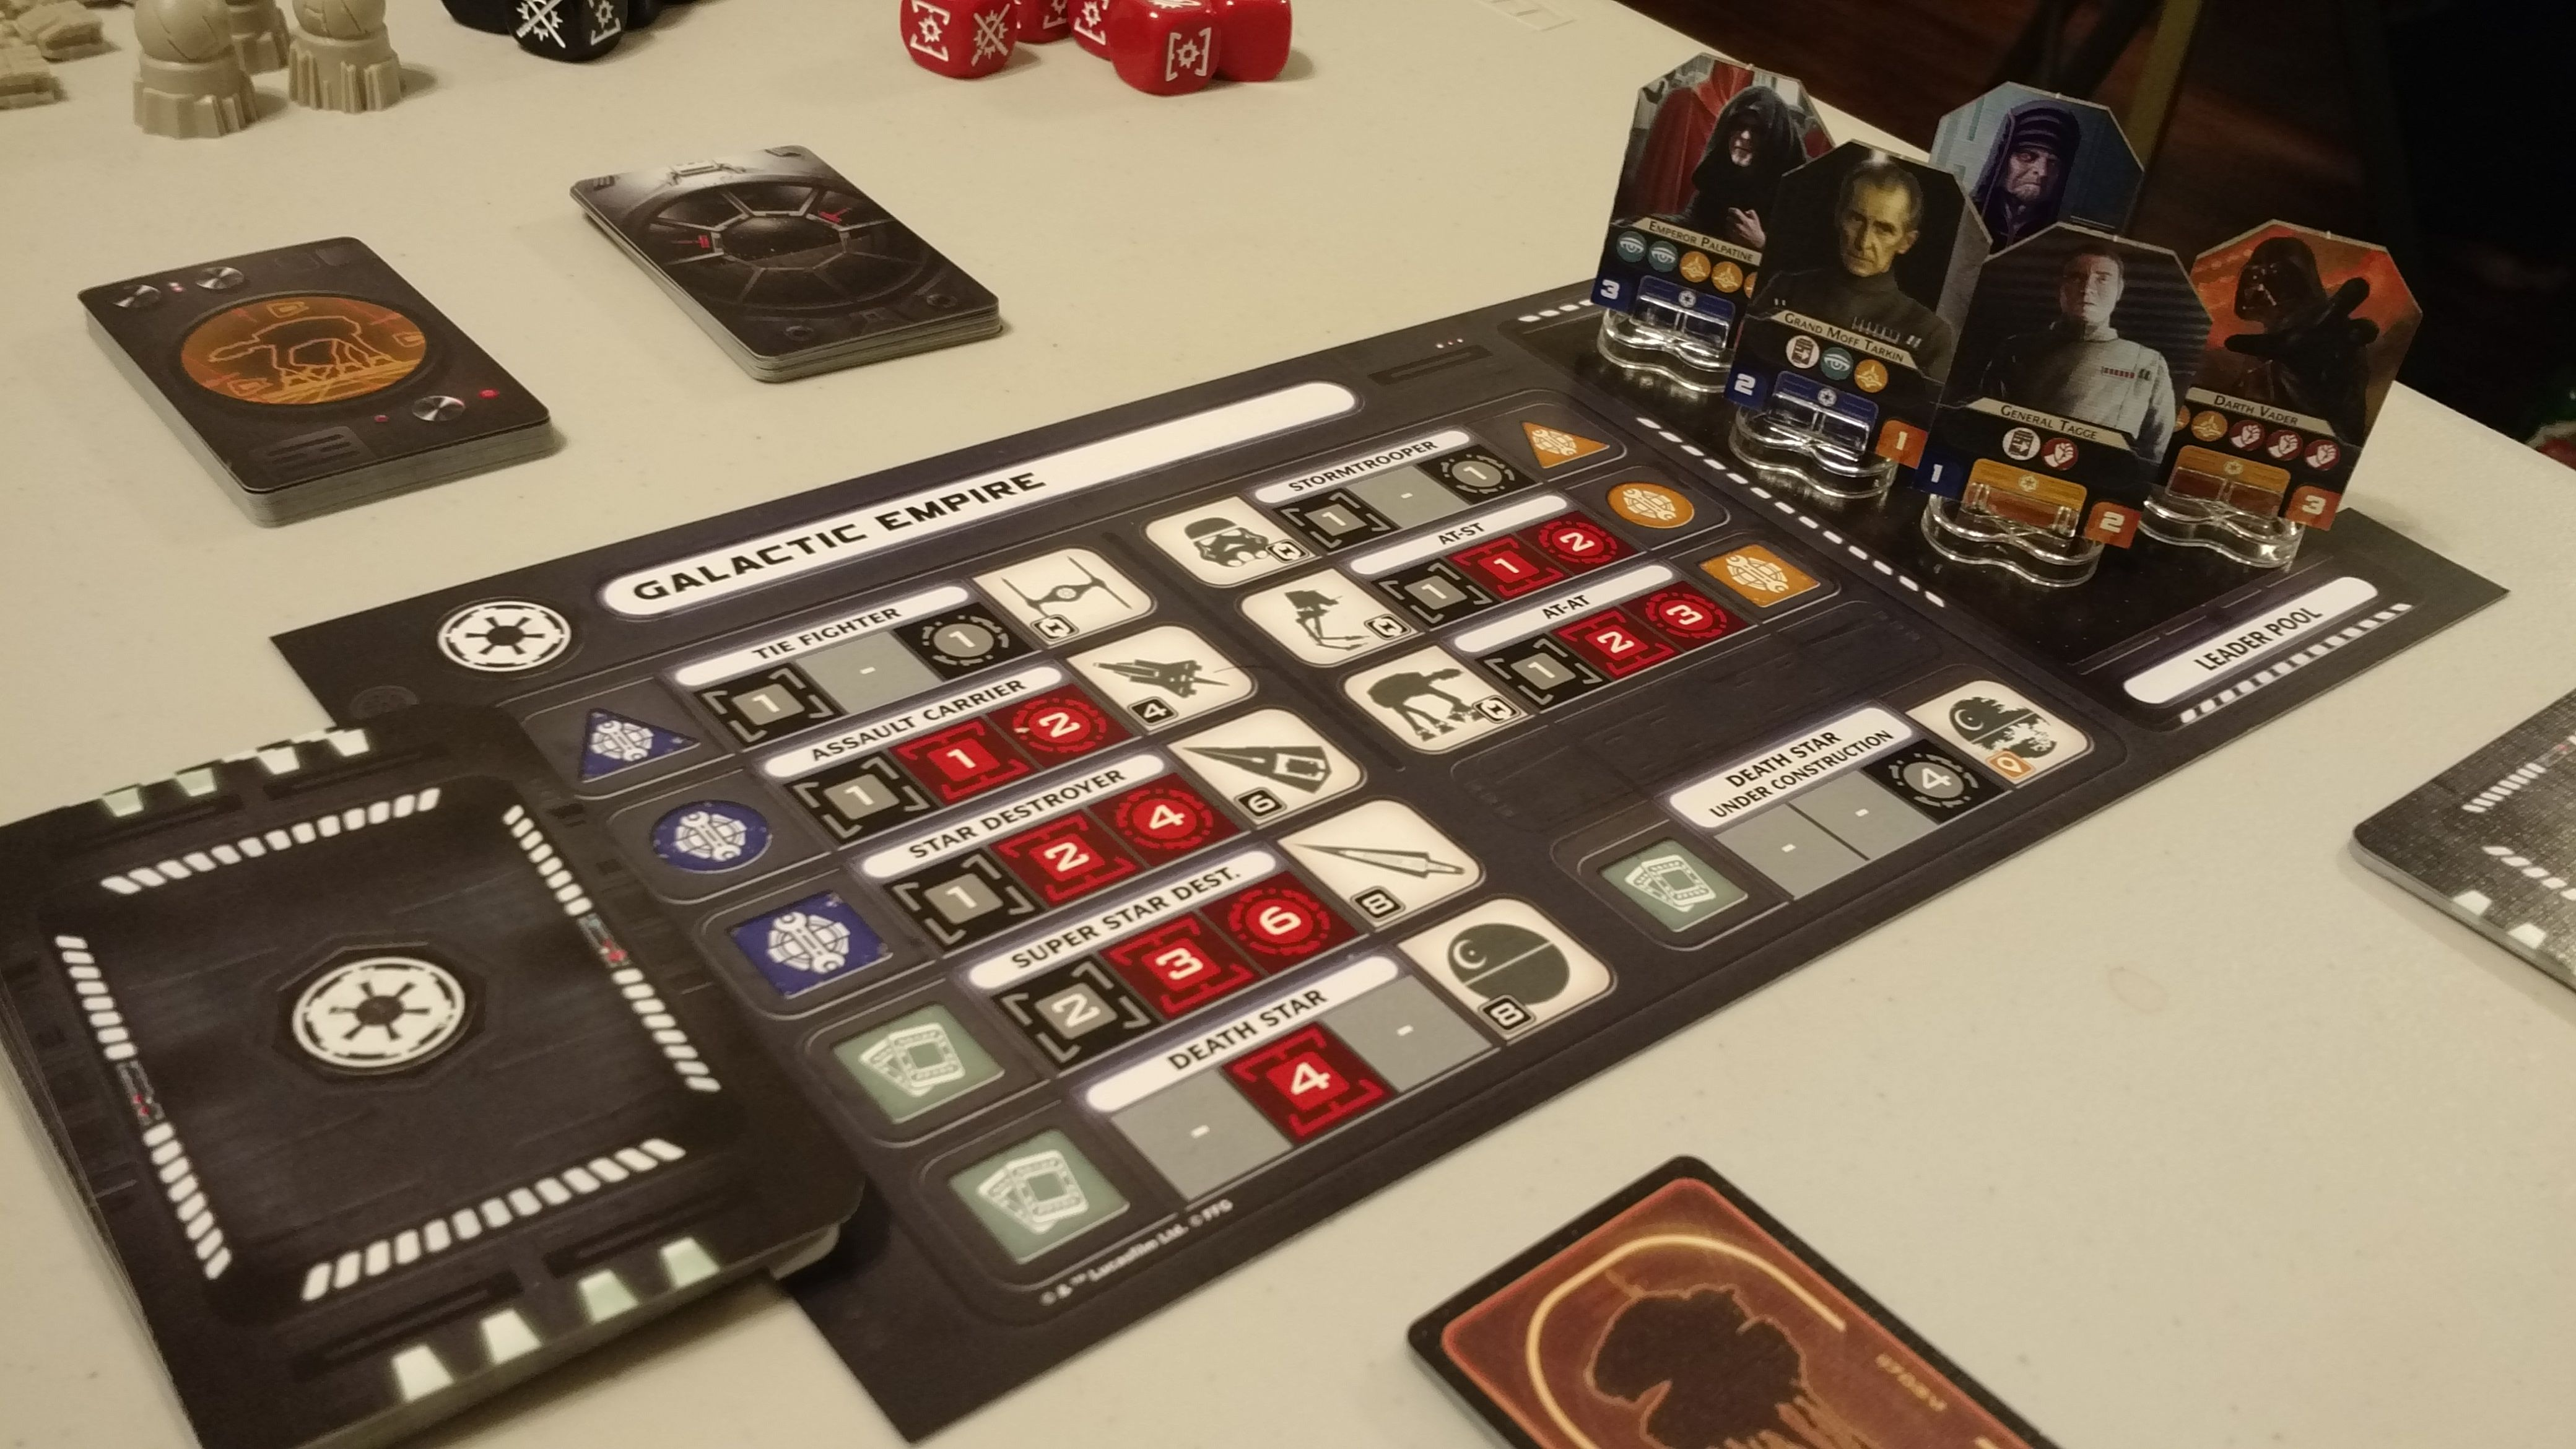 Star Wars Rebellion May Be the Biggest Surprise of the